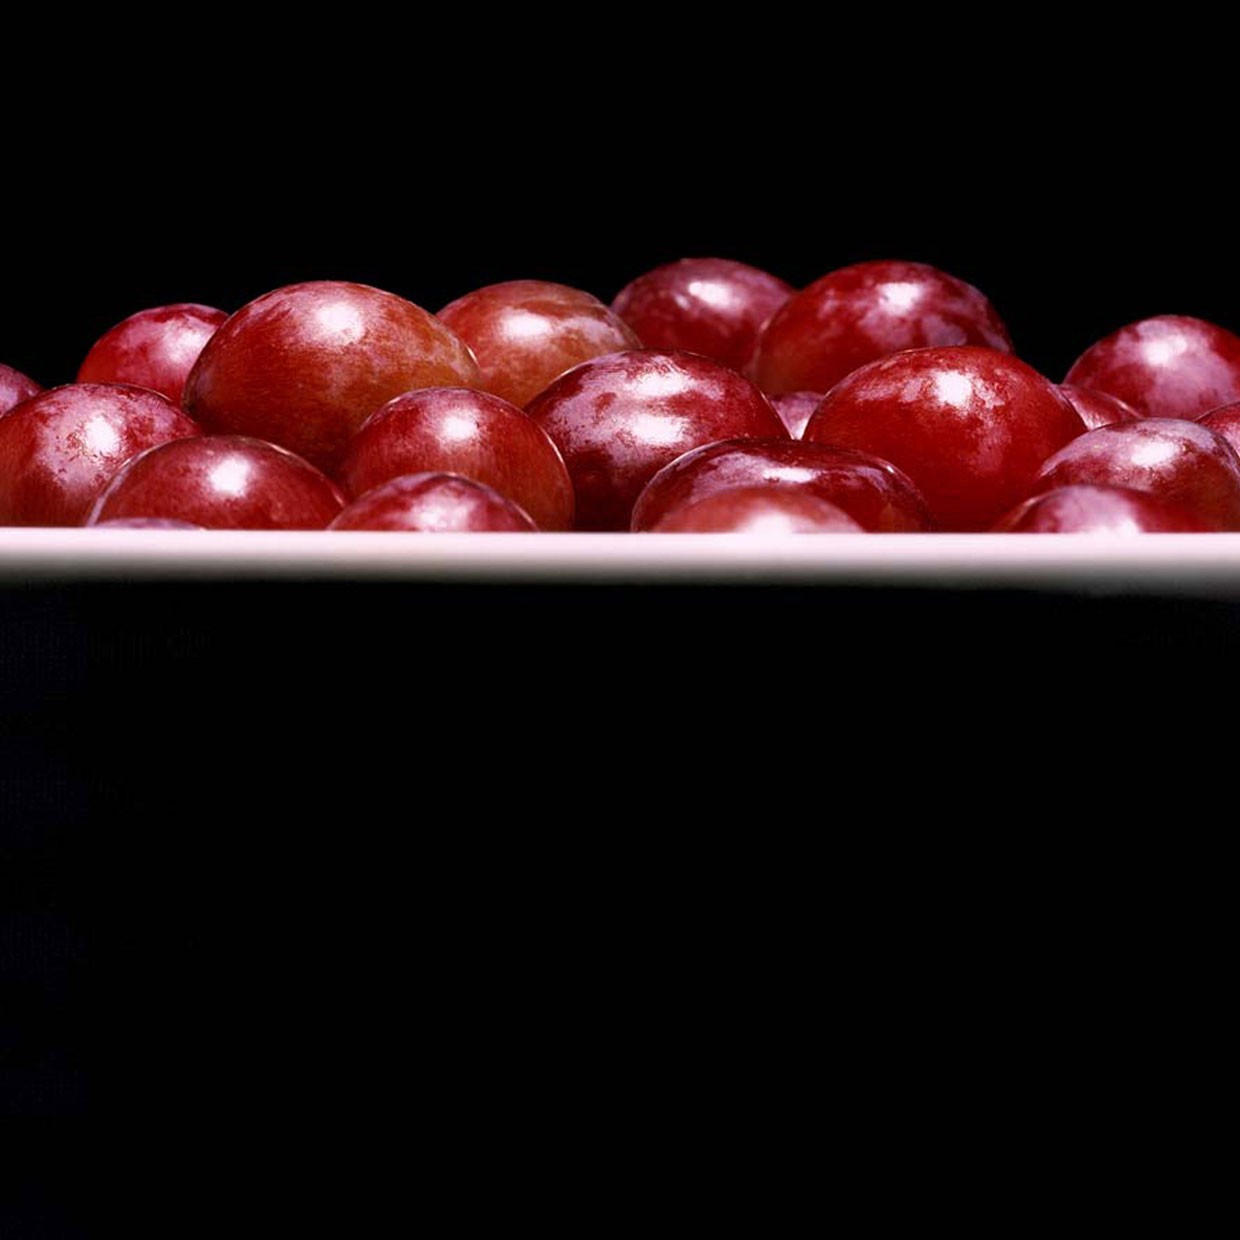 A profile of red grapes in a bowl